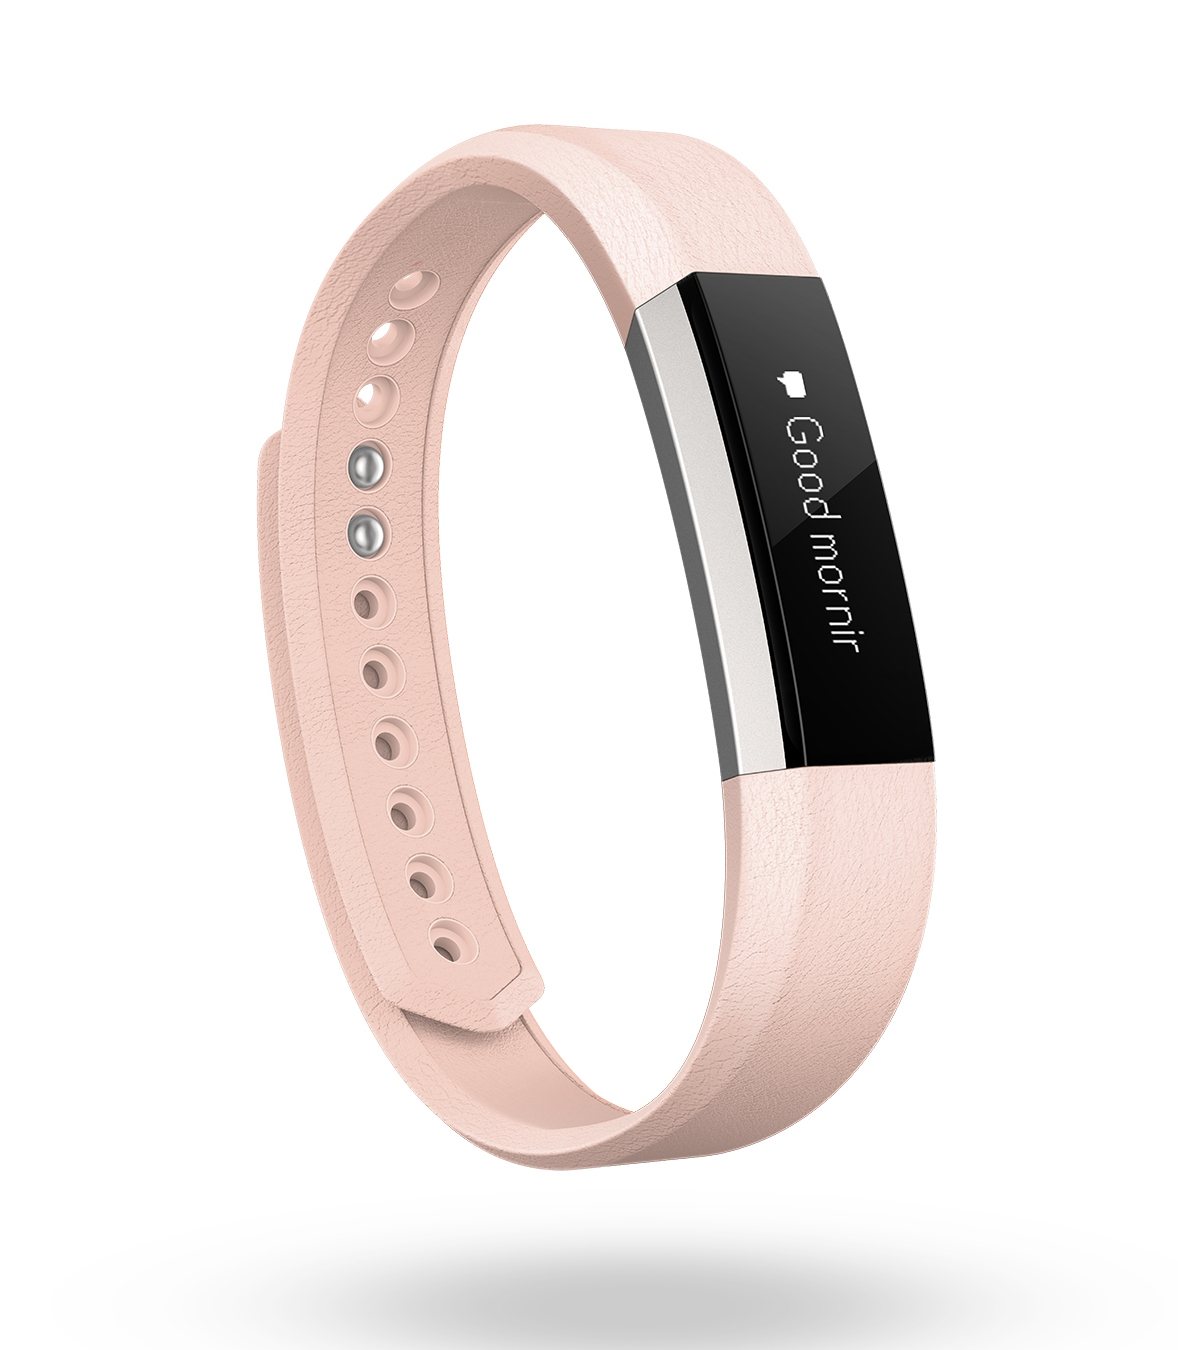 Meet the new Fitbit Alta! #weightlosstips